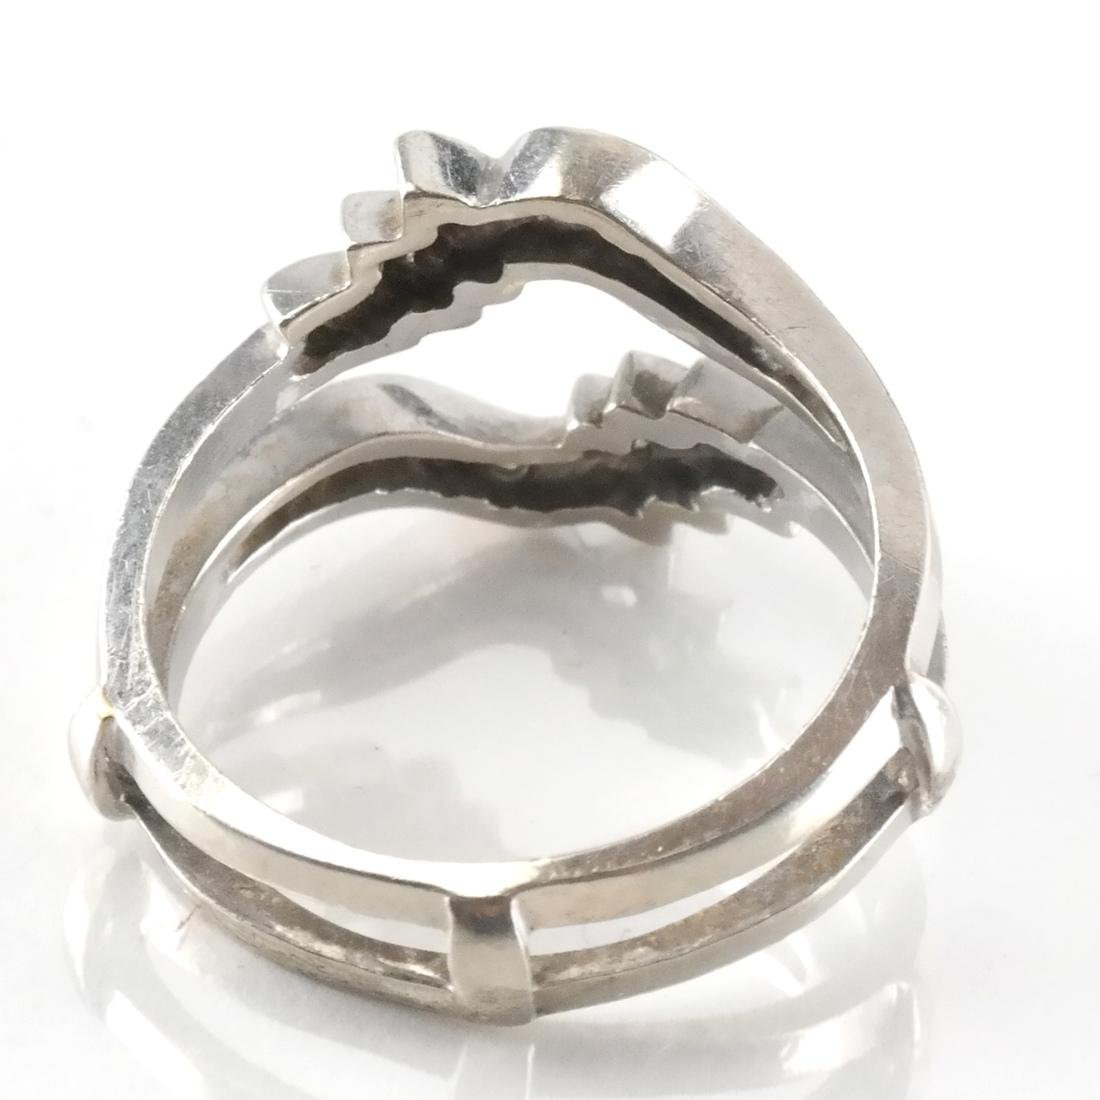 14k White Gold Inset Ring with Diamonds - 3